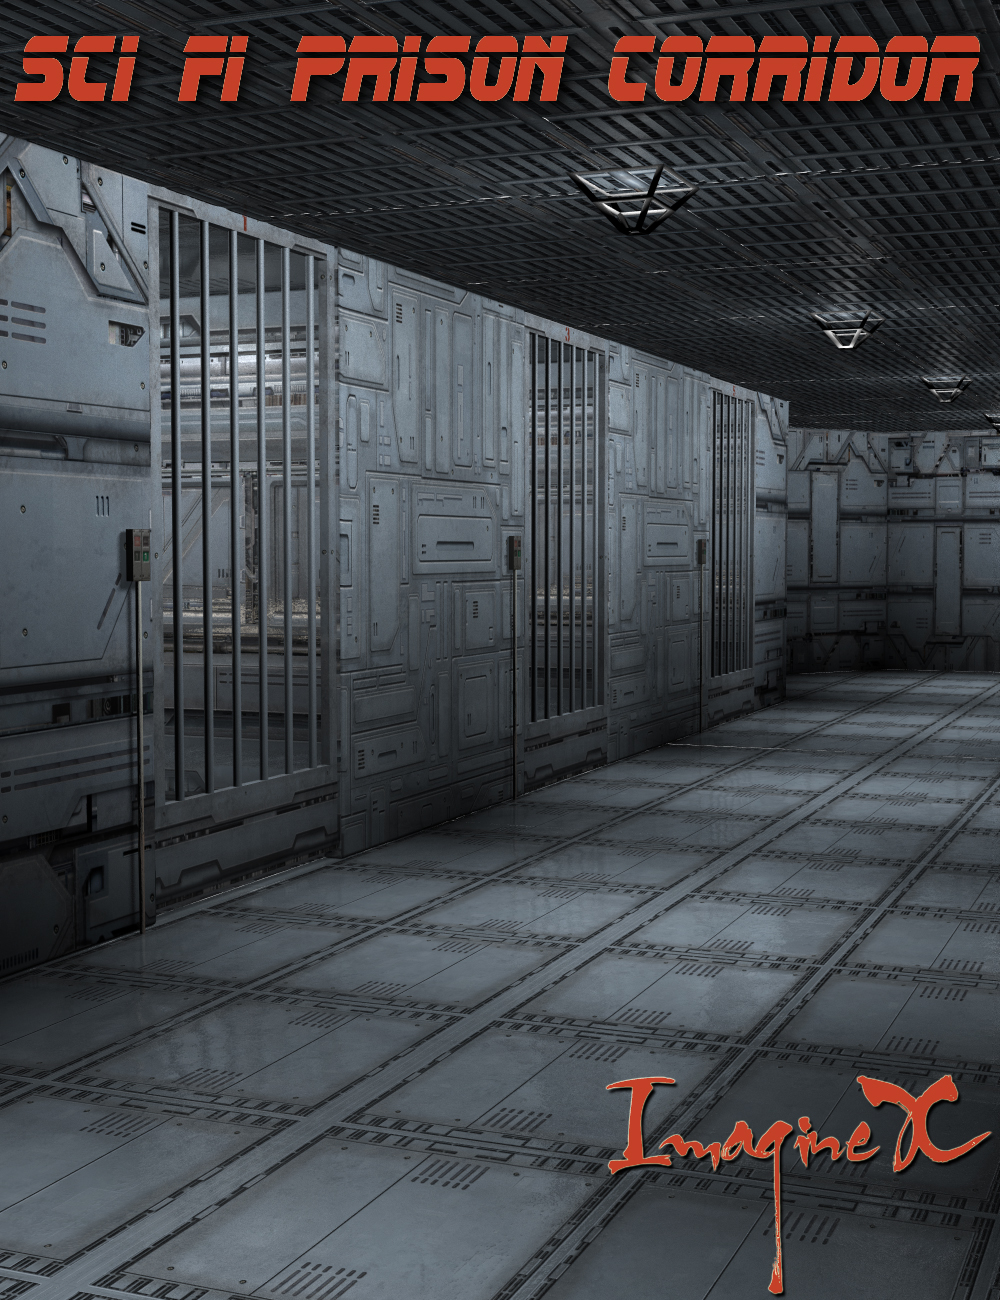 Sci Fi Prison Corridor by: ImagineX, 3D Models by Daz 3D